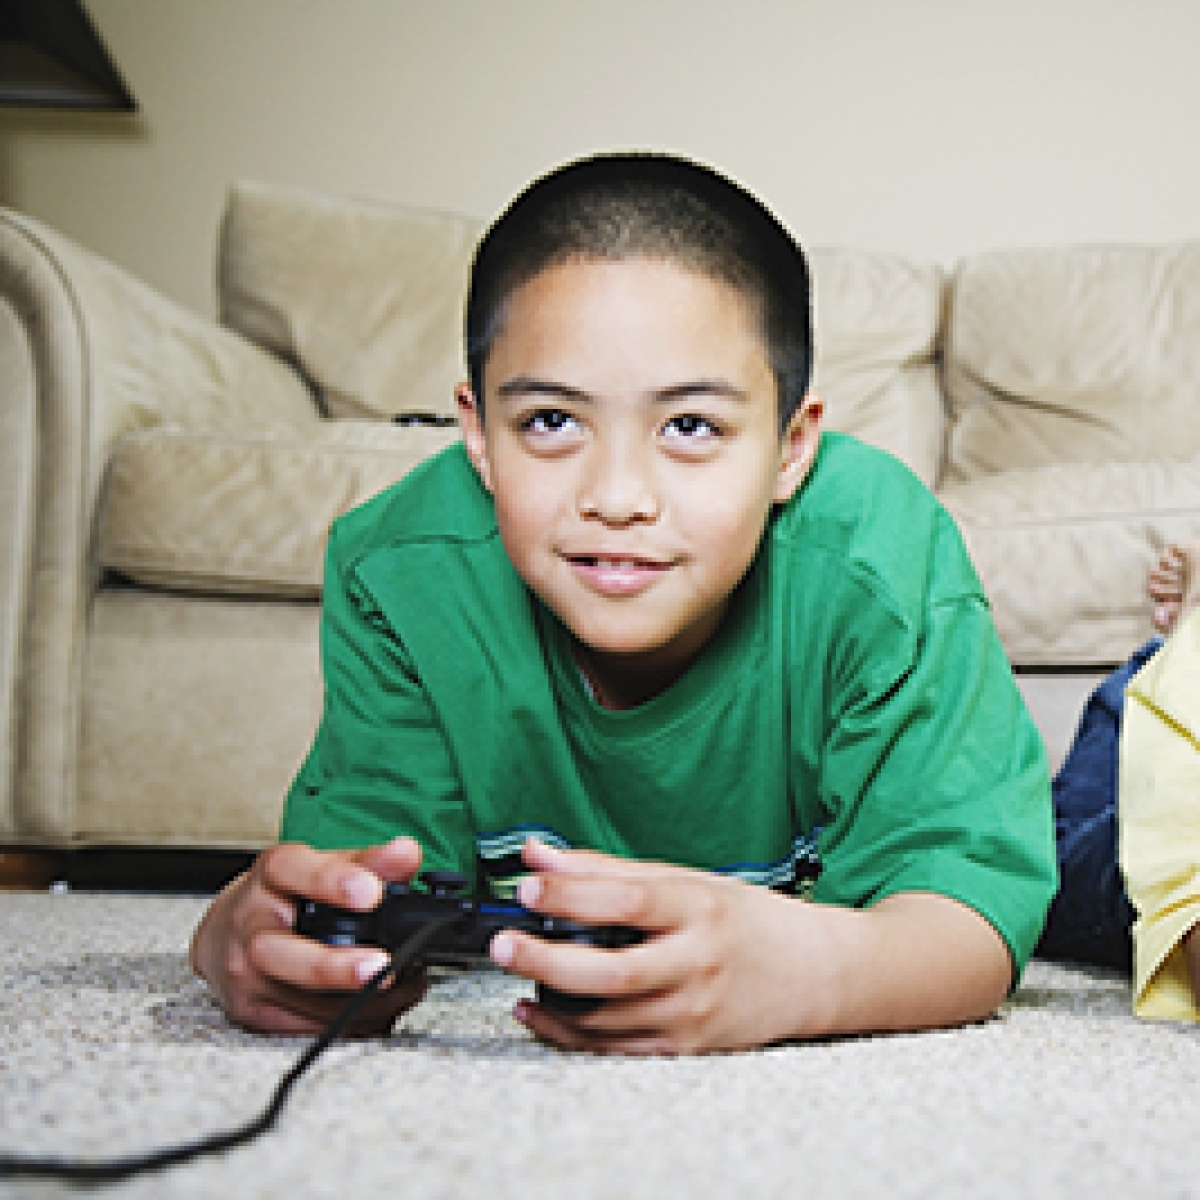 Play video games to increase creativity